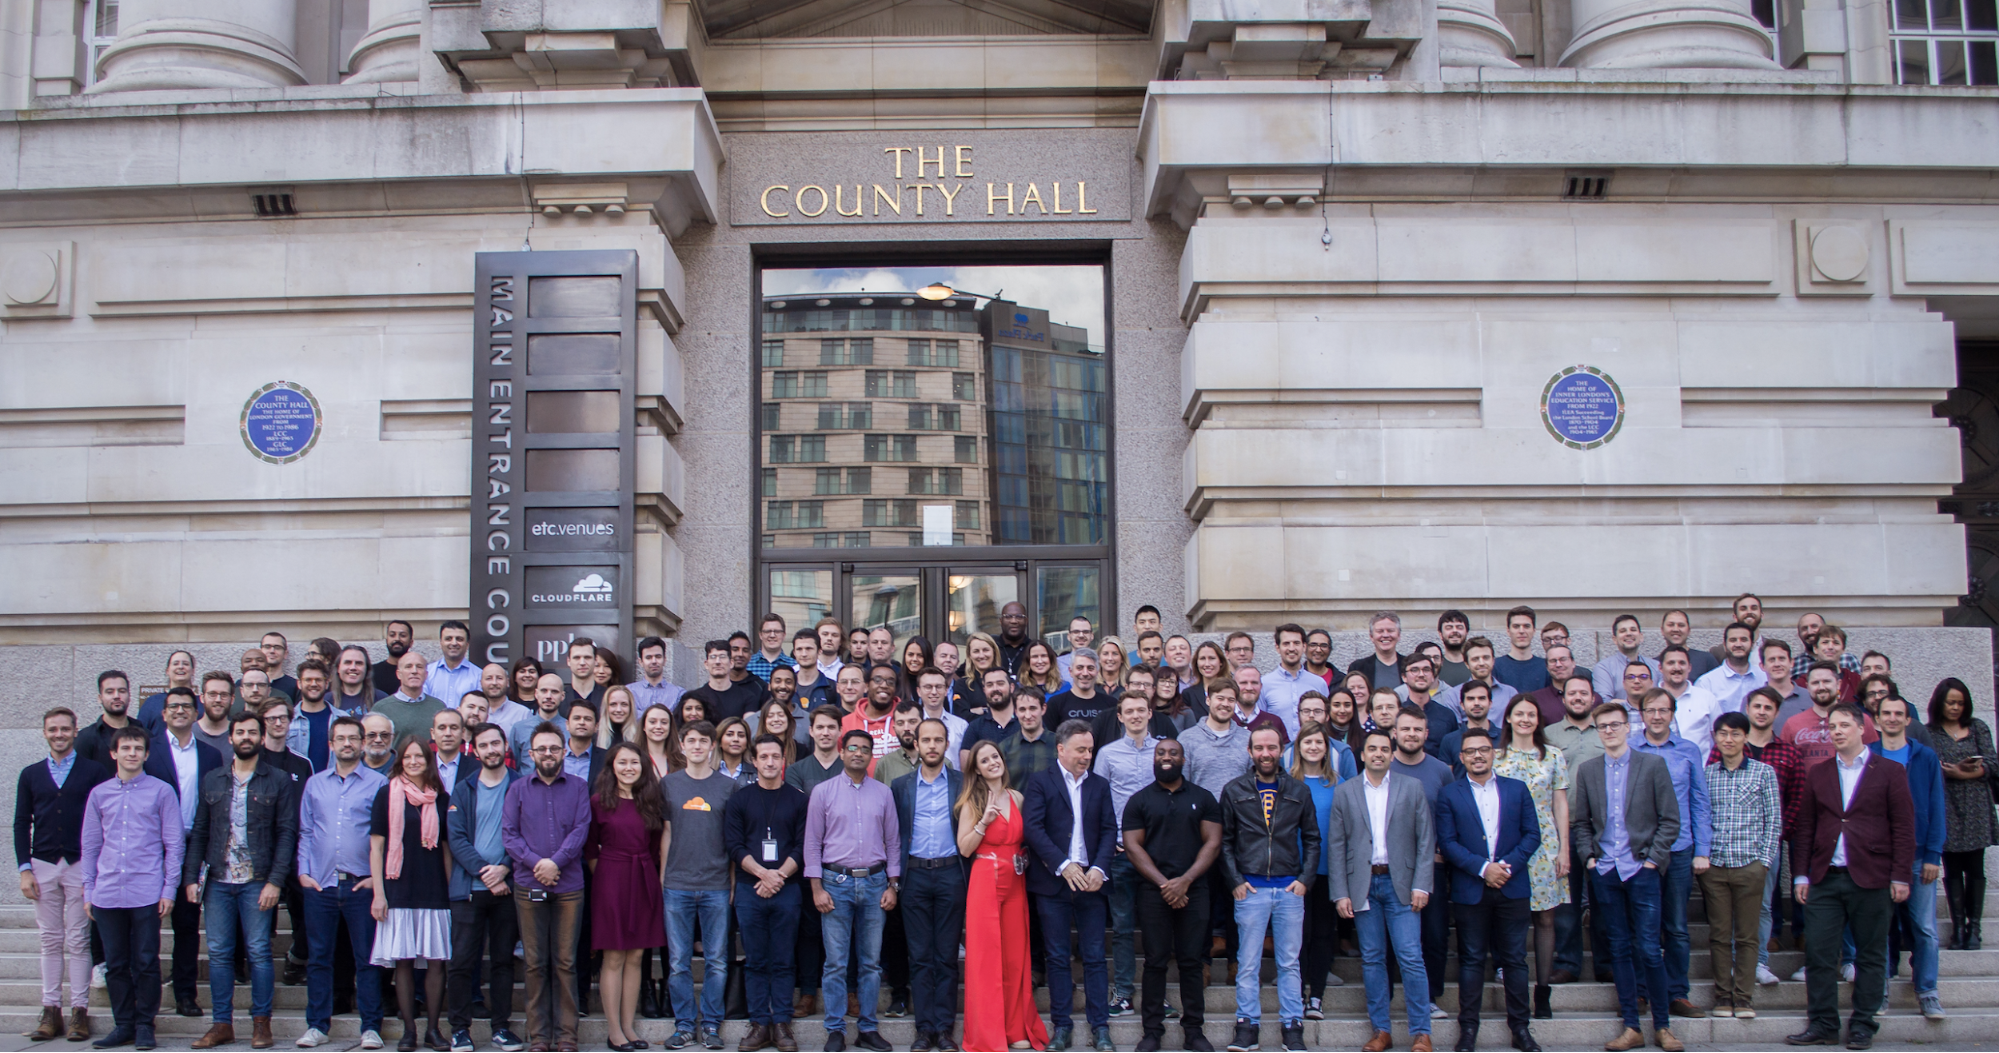 Making progress in Cloudflare's EMEA operations, and looking ahead to a bright future